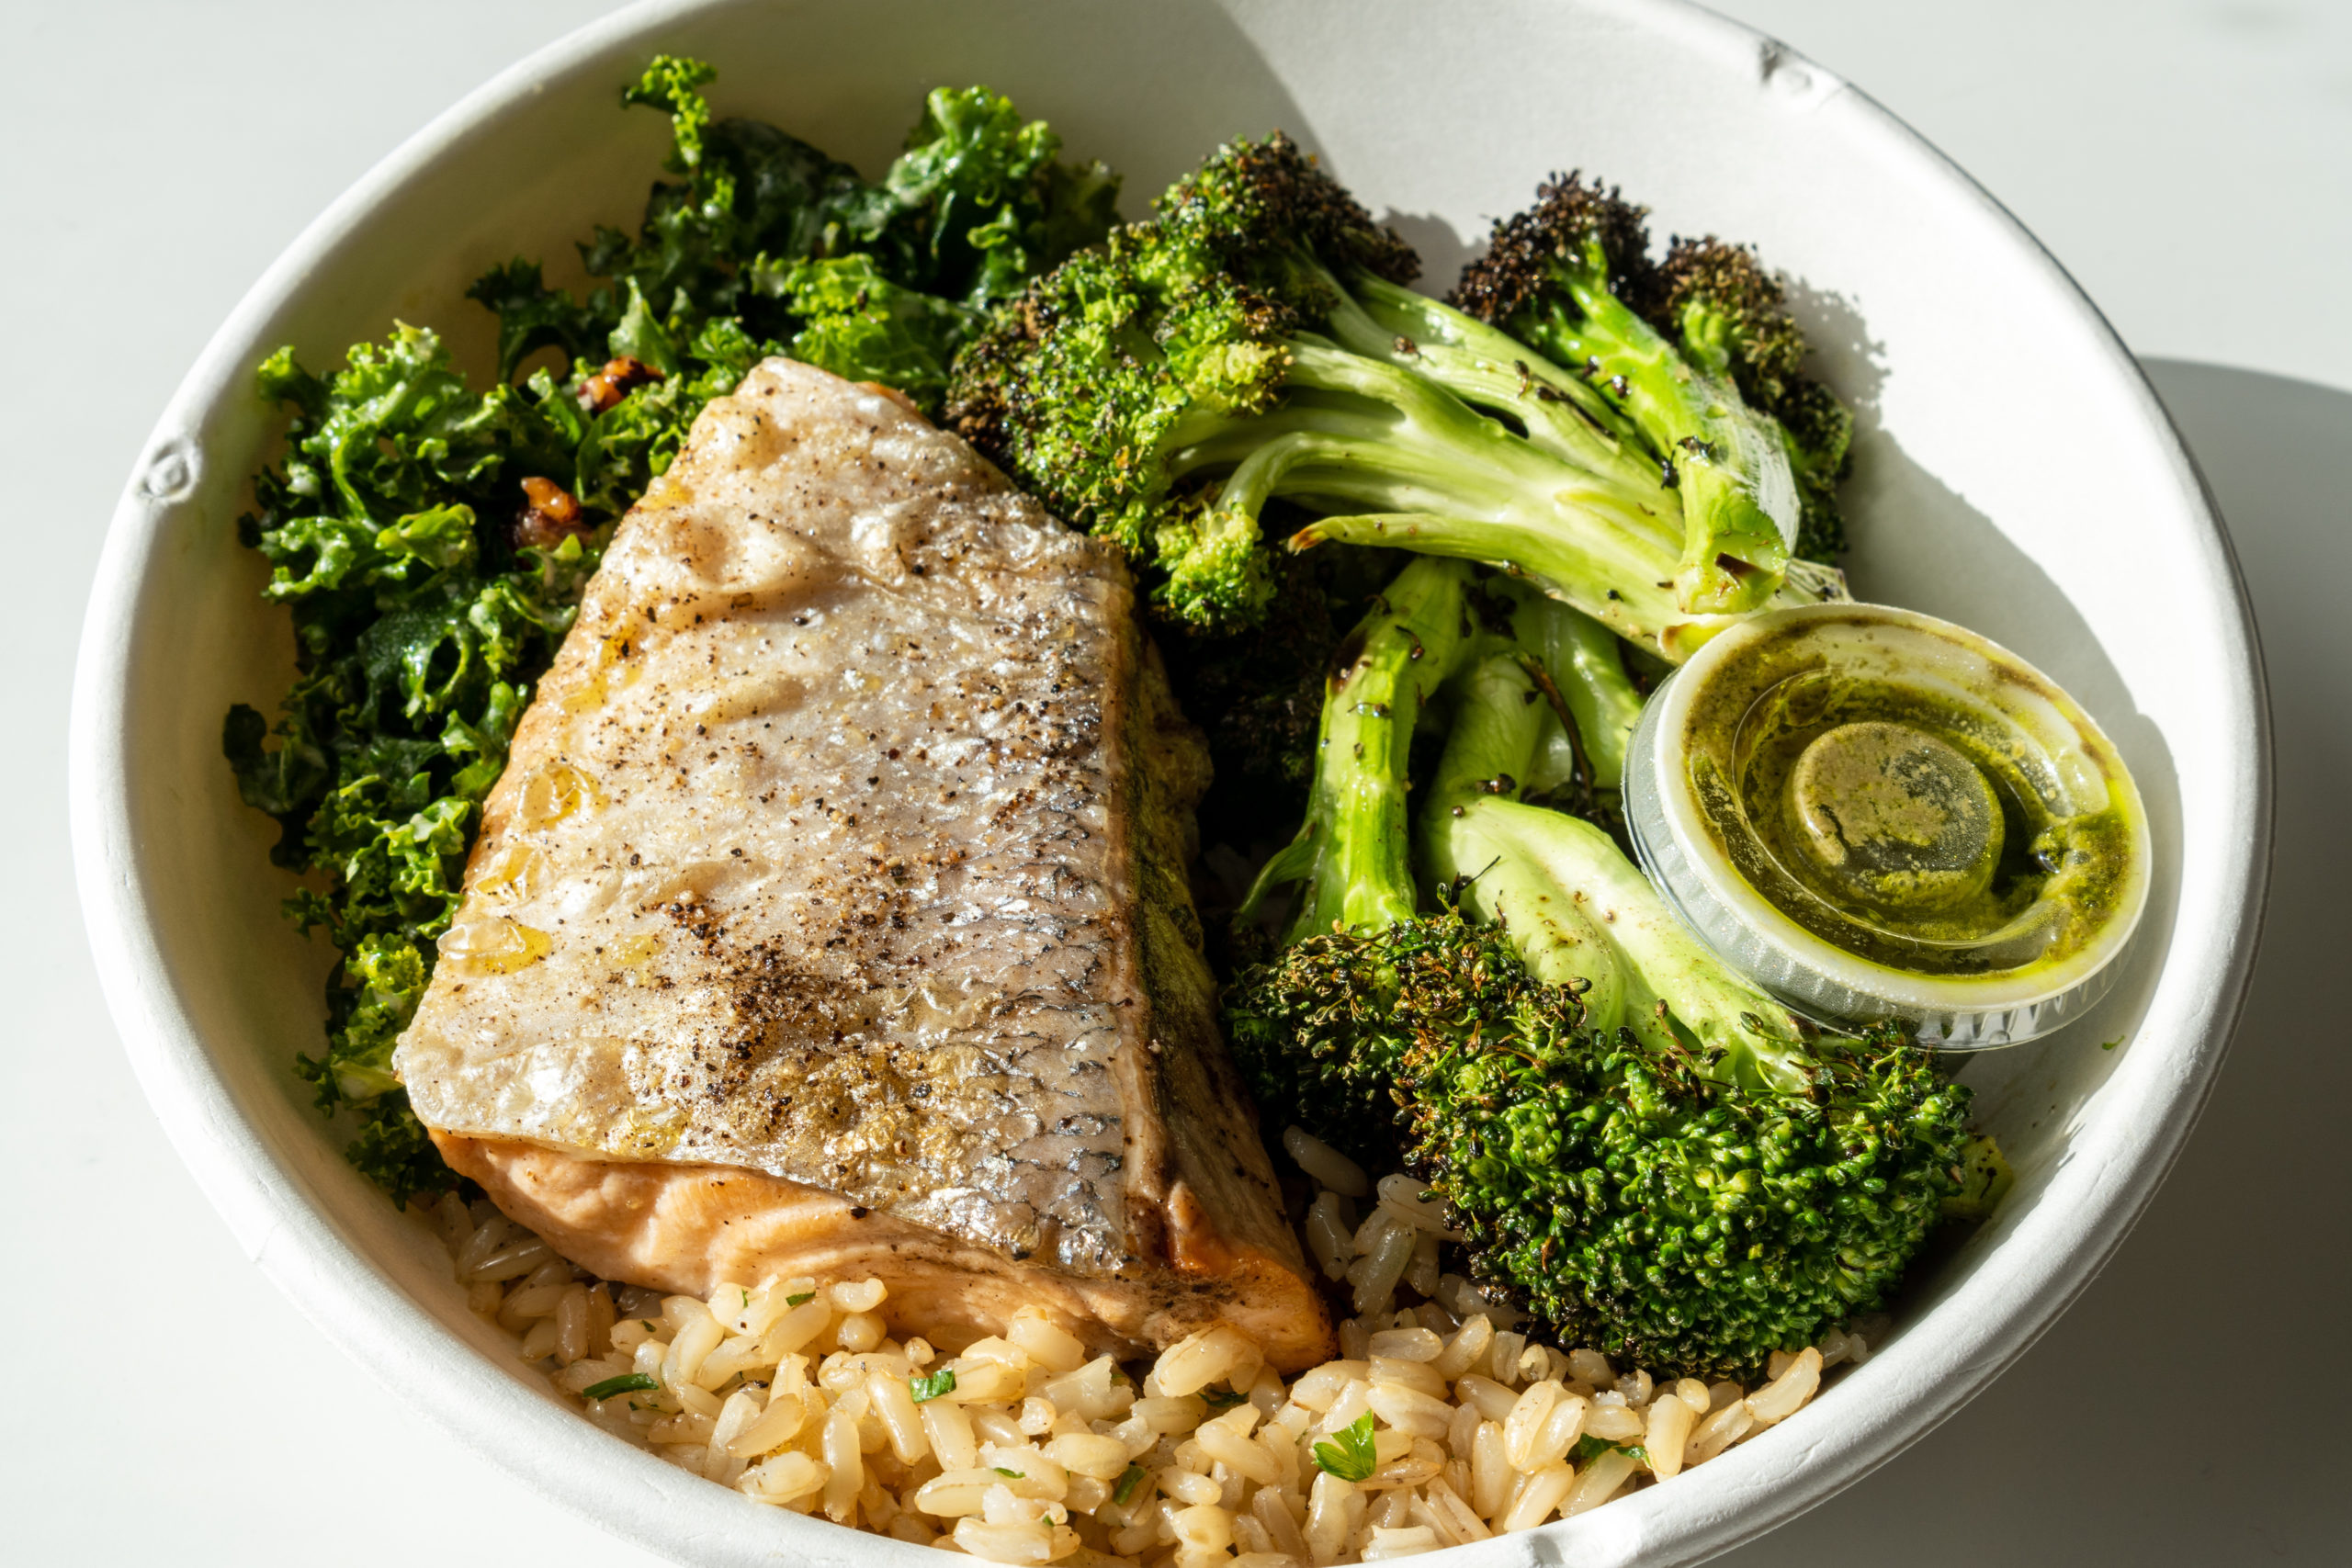 Make Your Own Bowl- Gulf of Maine Salmon, pecan kale caesar, charred broccoli with lemon, brown rice with parsley